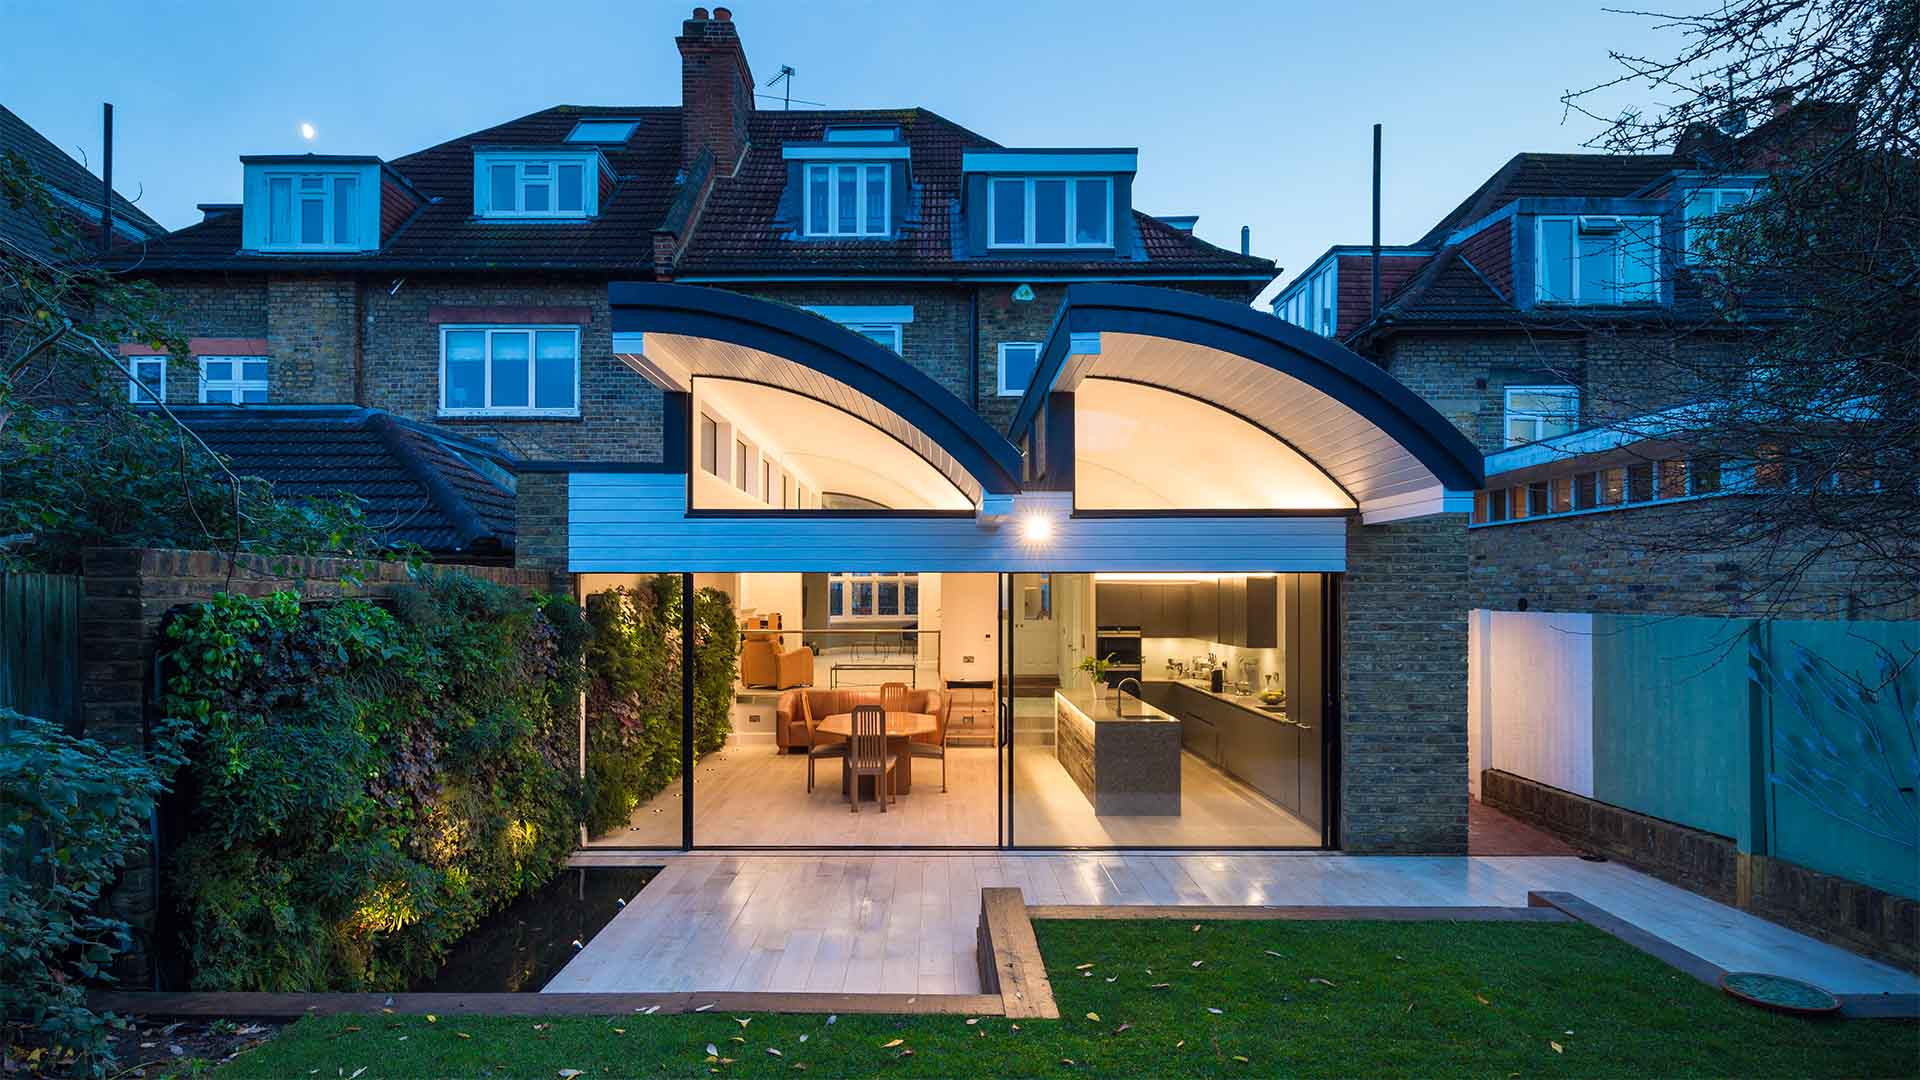 Architectural Lighting Design Residential Extension Kitchen Living Space Dual Vaulted Roof Indoor Outdoor Living Wall Designers Nulty